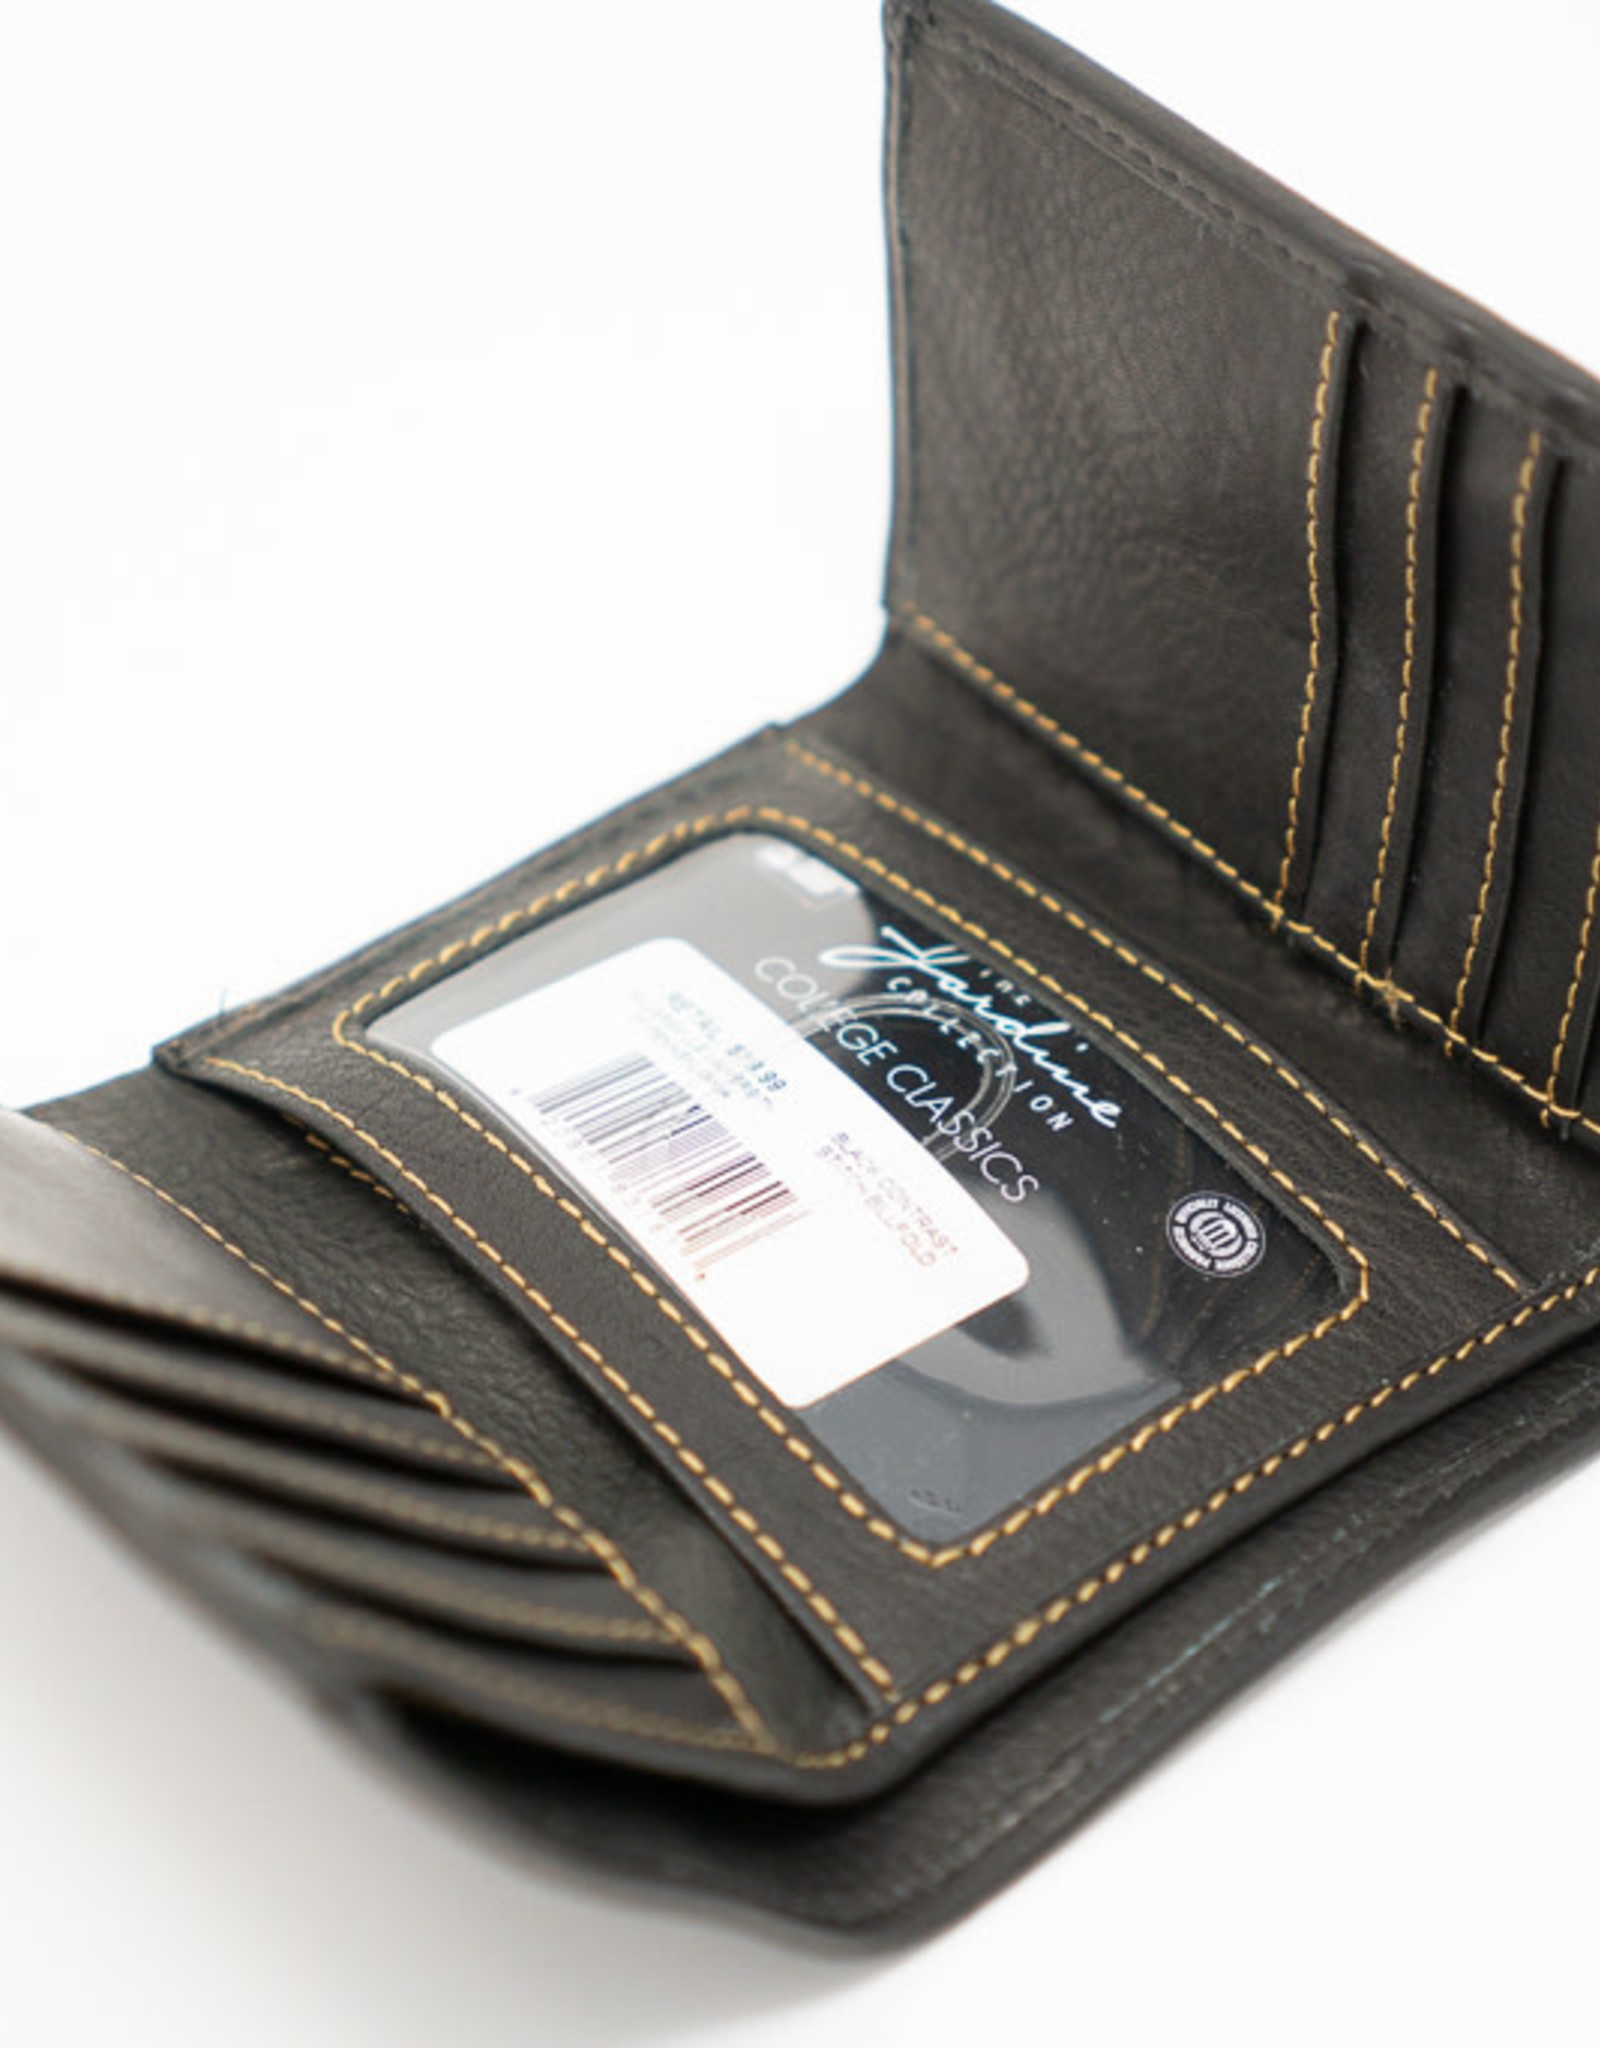 M Sword Billfold Wallet - Black